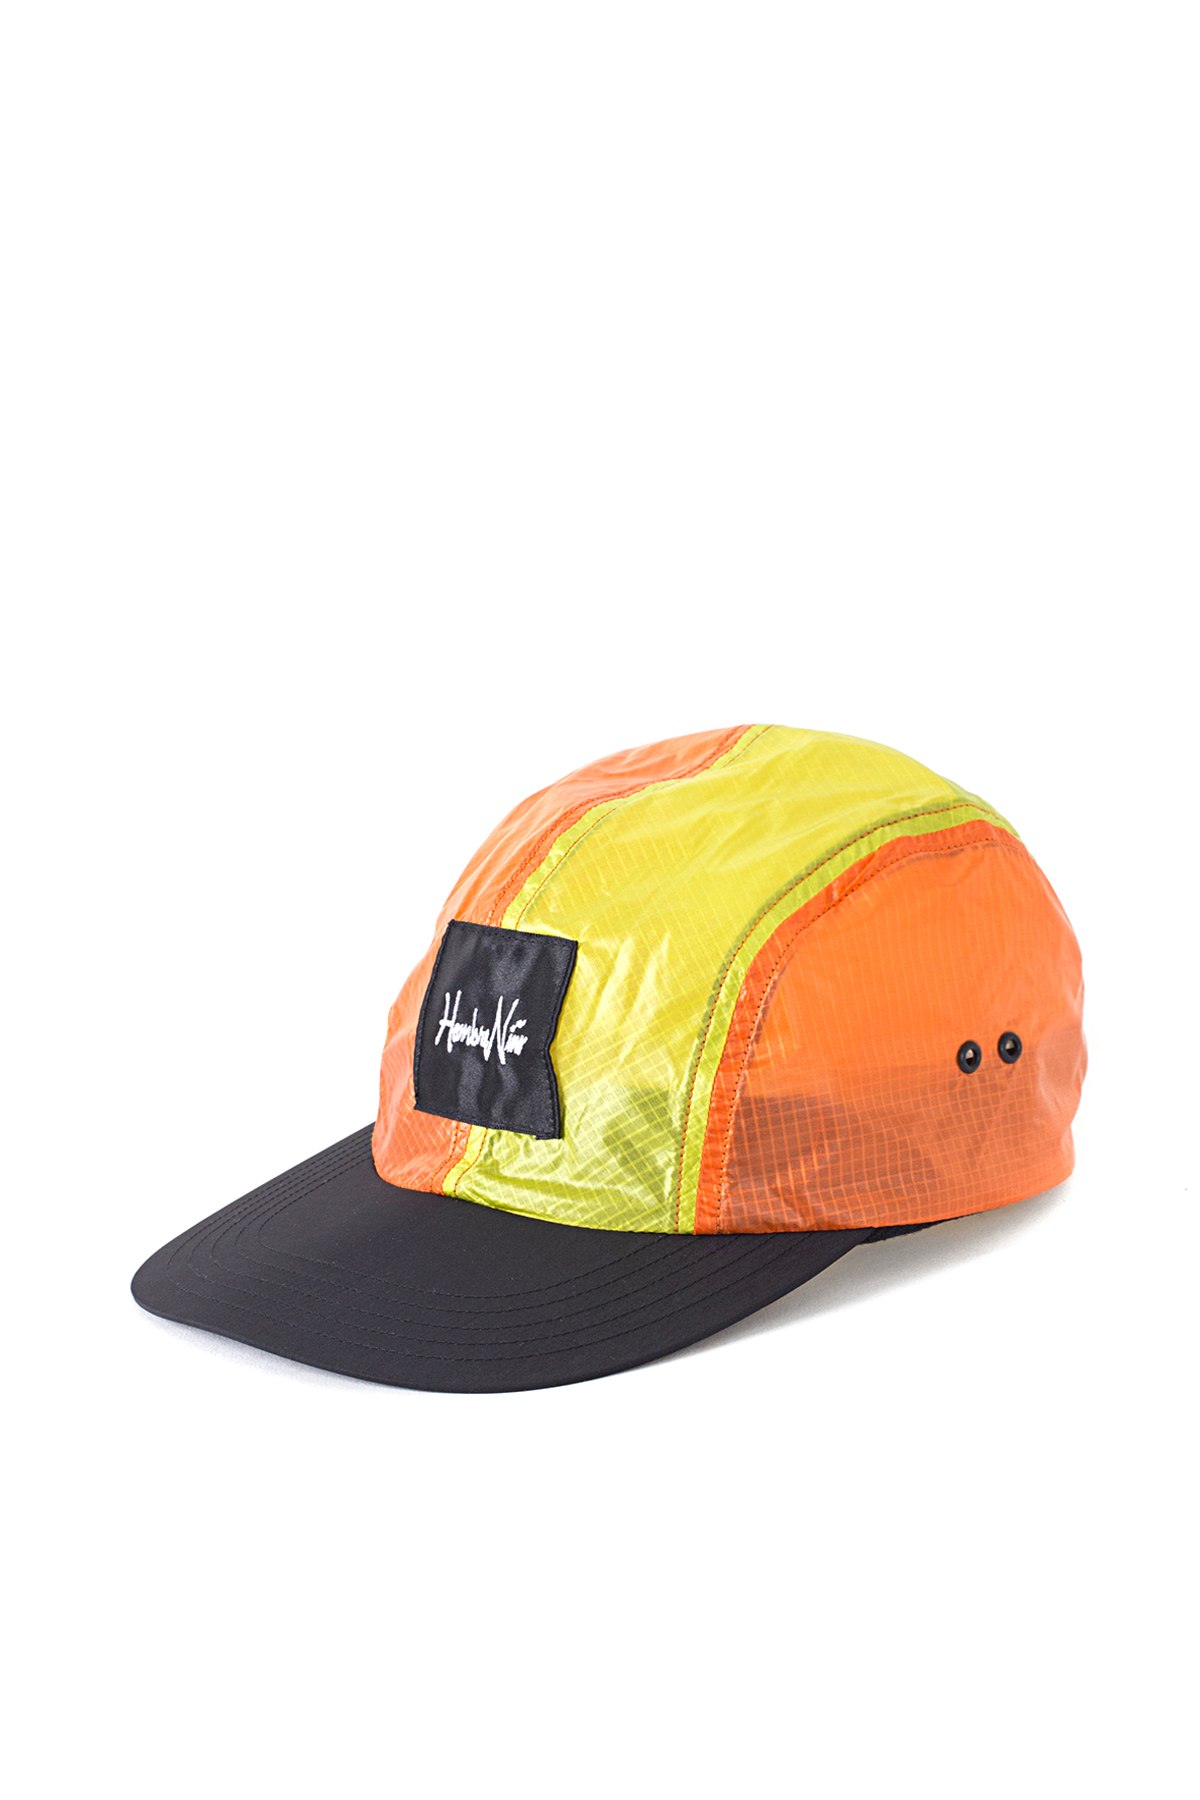 Hombre Niño x COMESANDGOES : Multi Color Nylon Jet Cap (Orange)